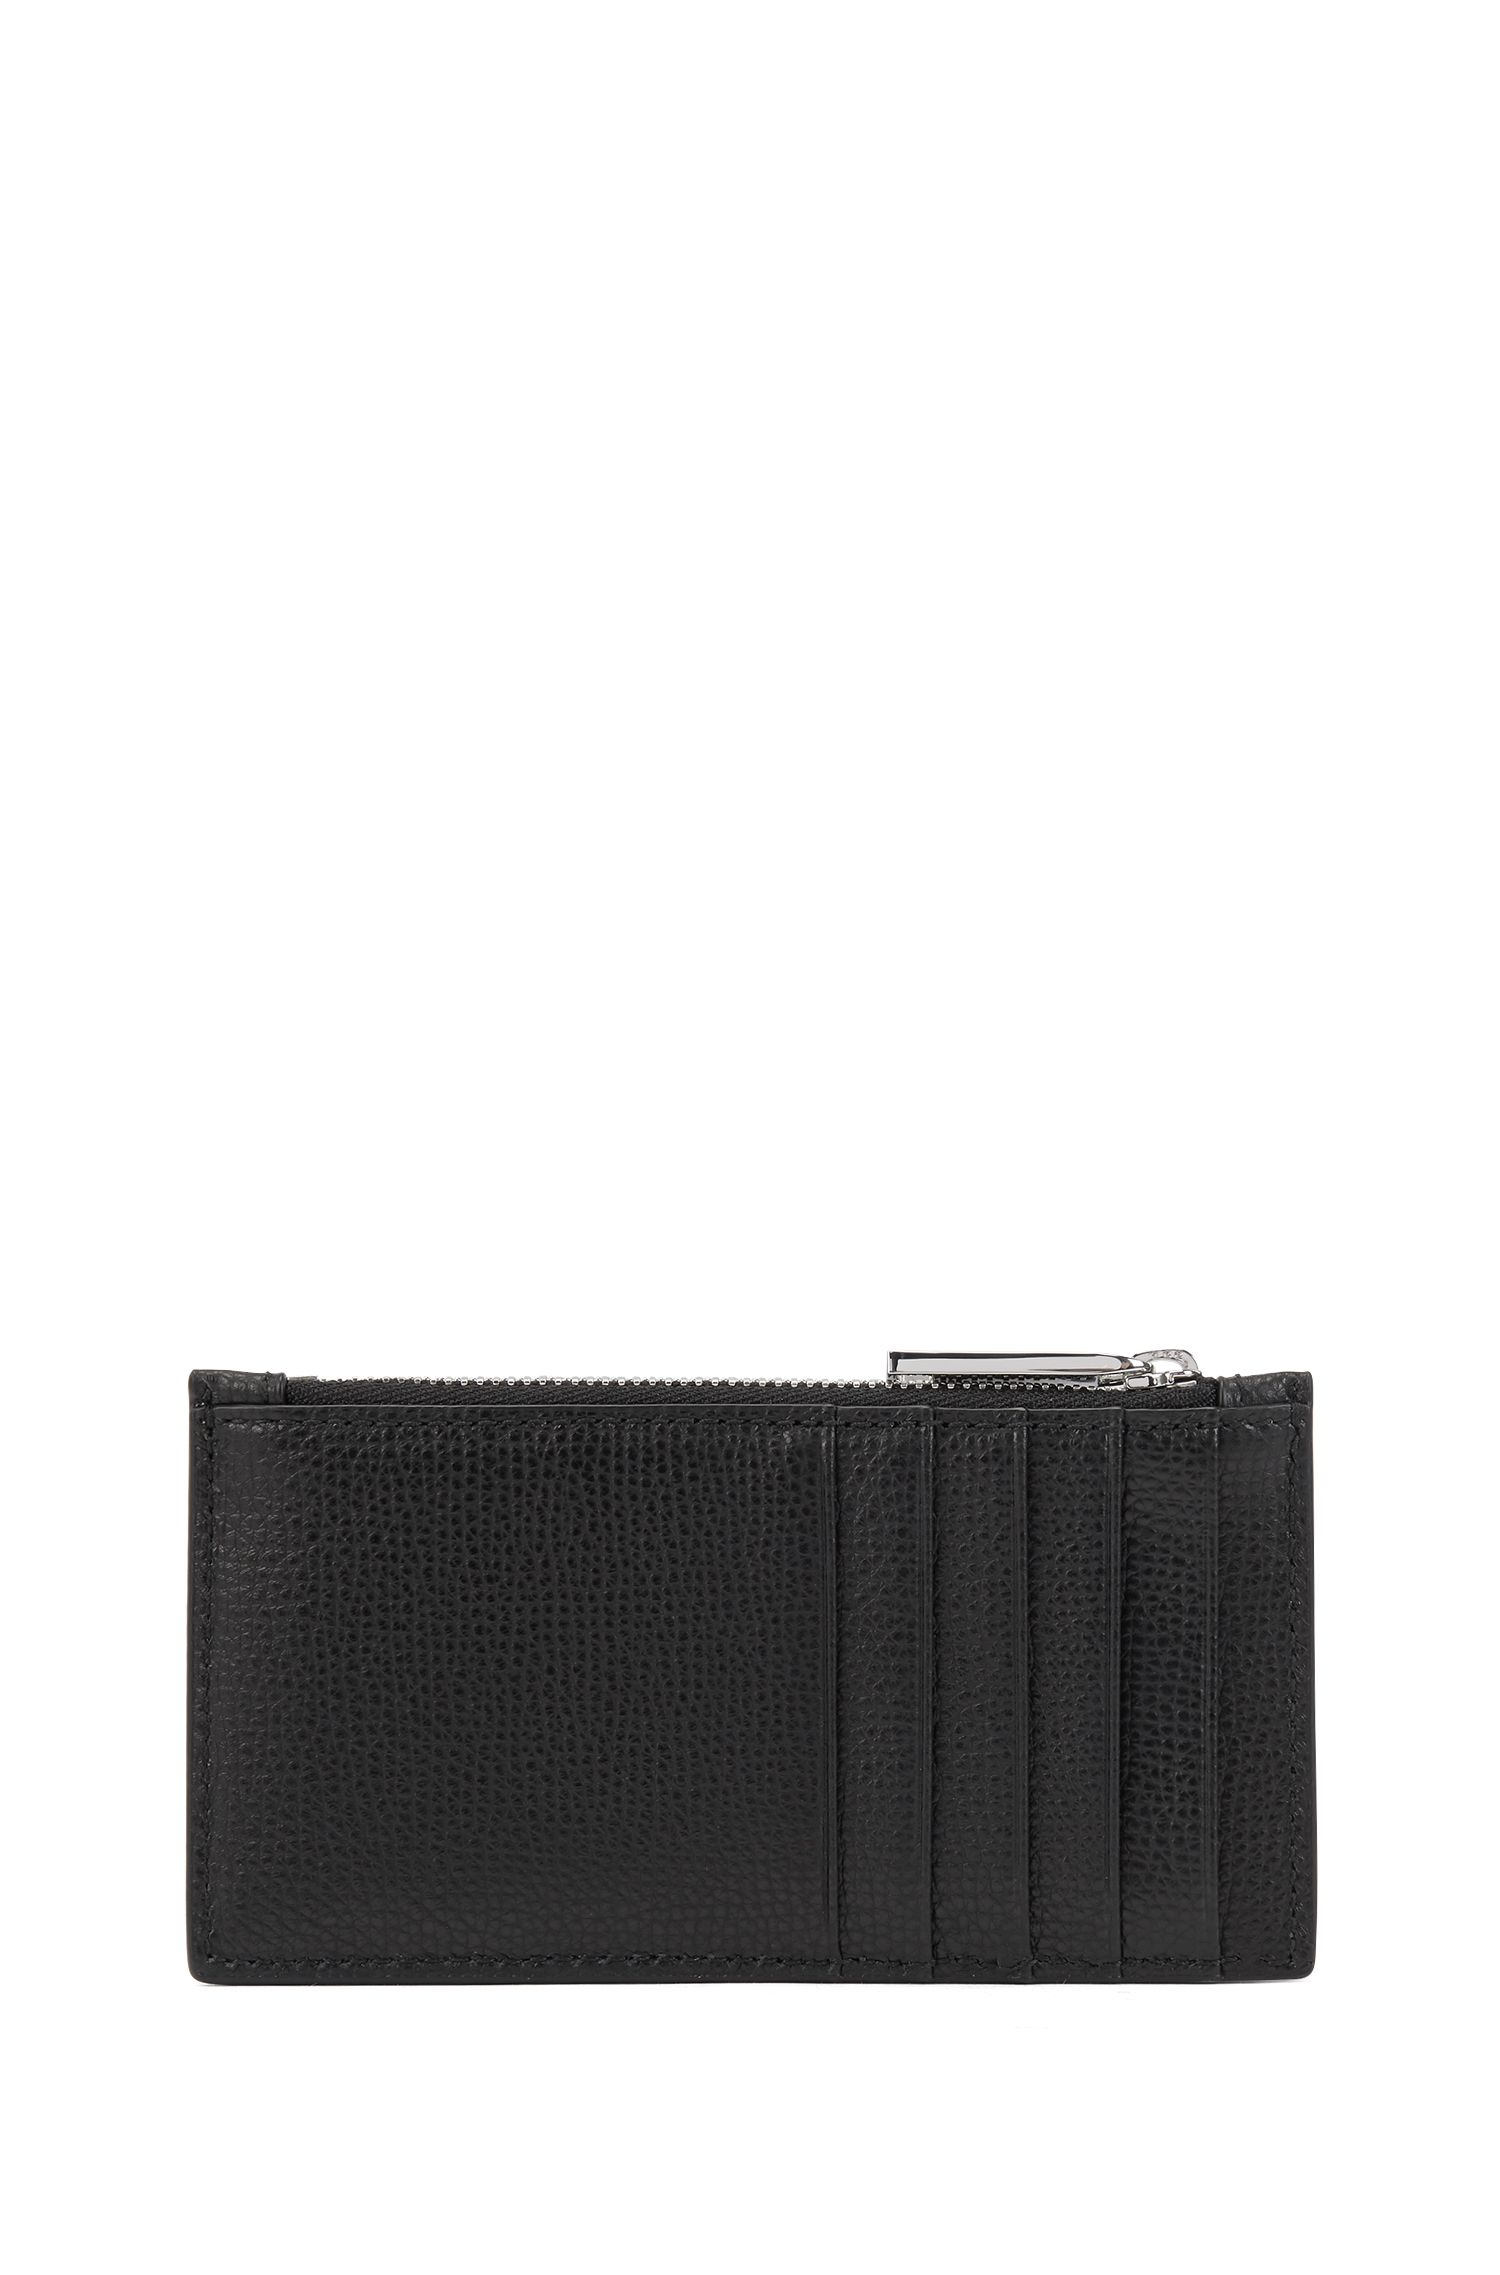 Card holder in grainy Italian leather with zip compartment, Black